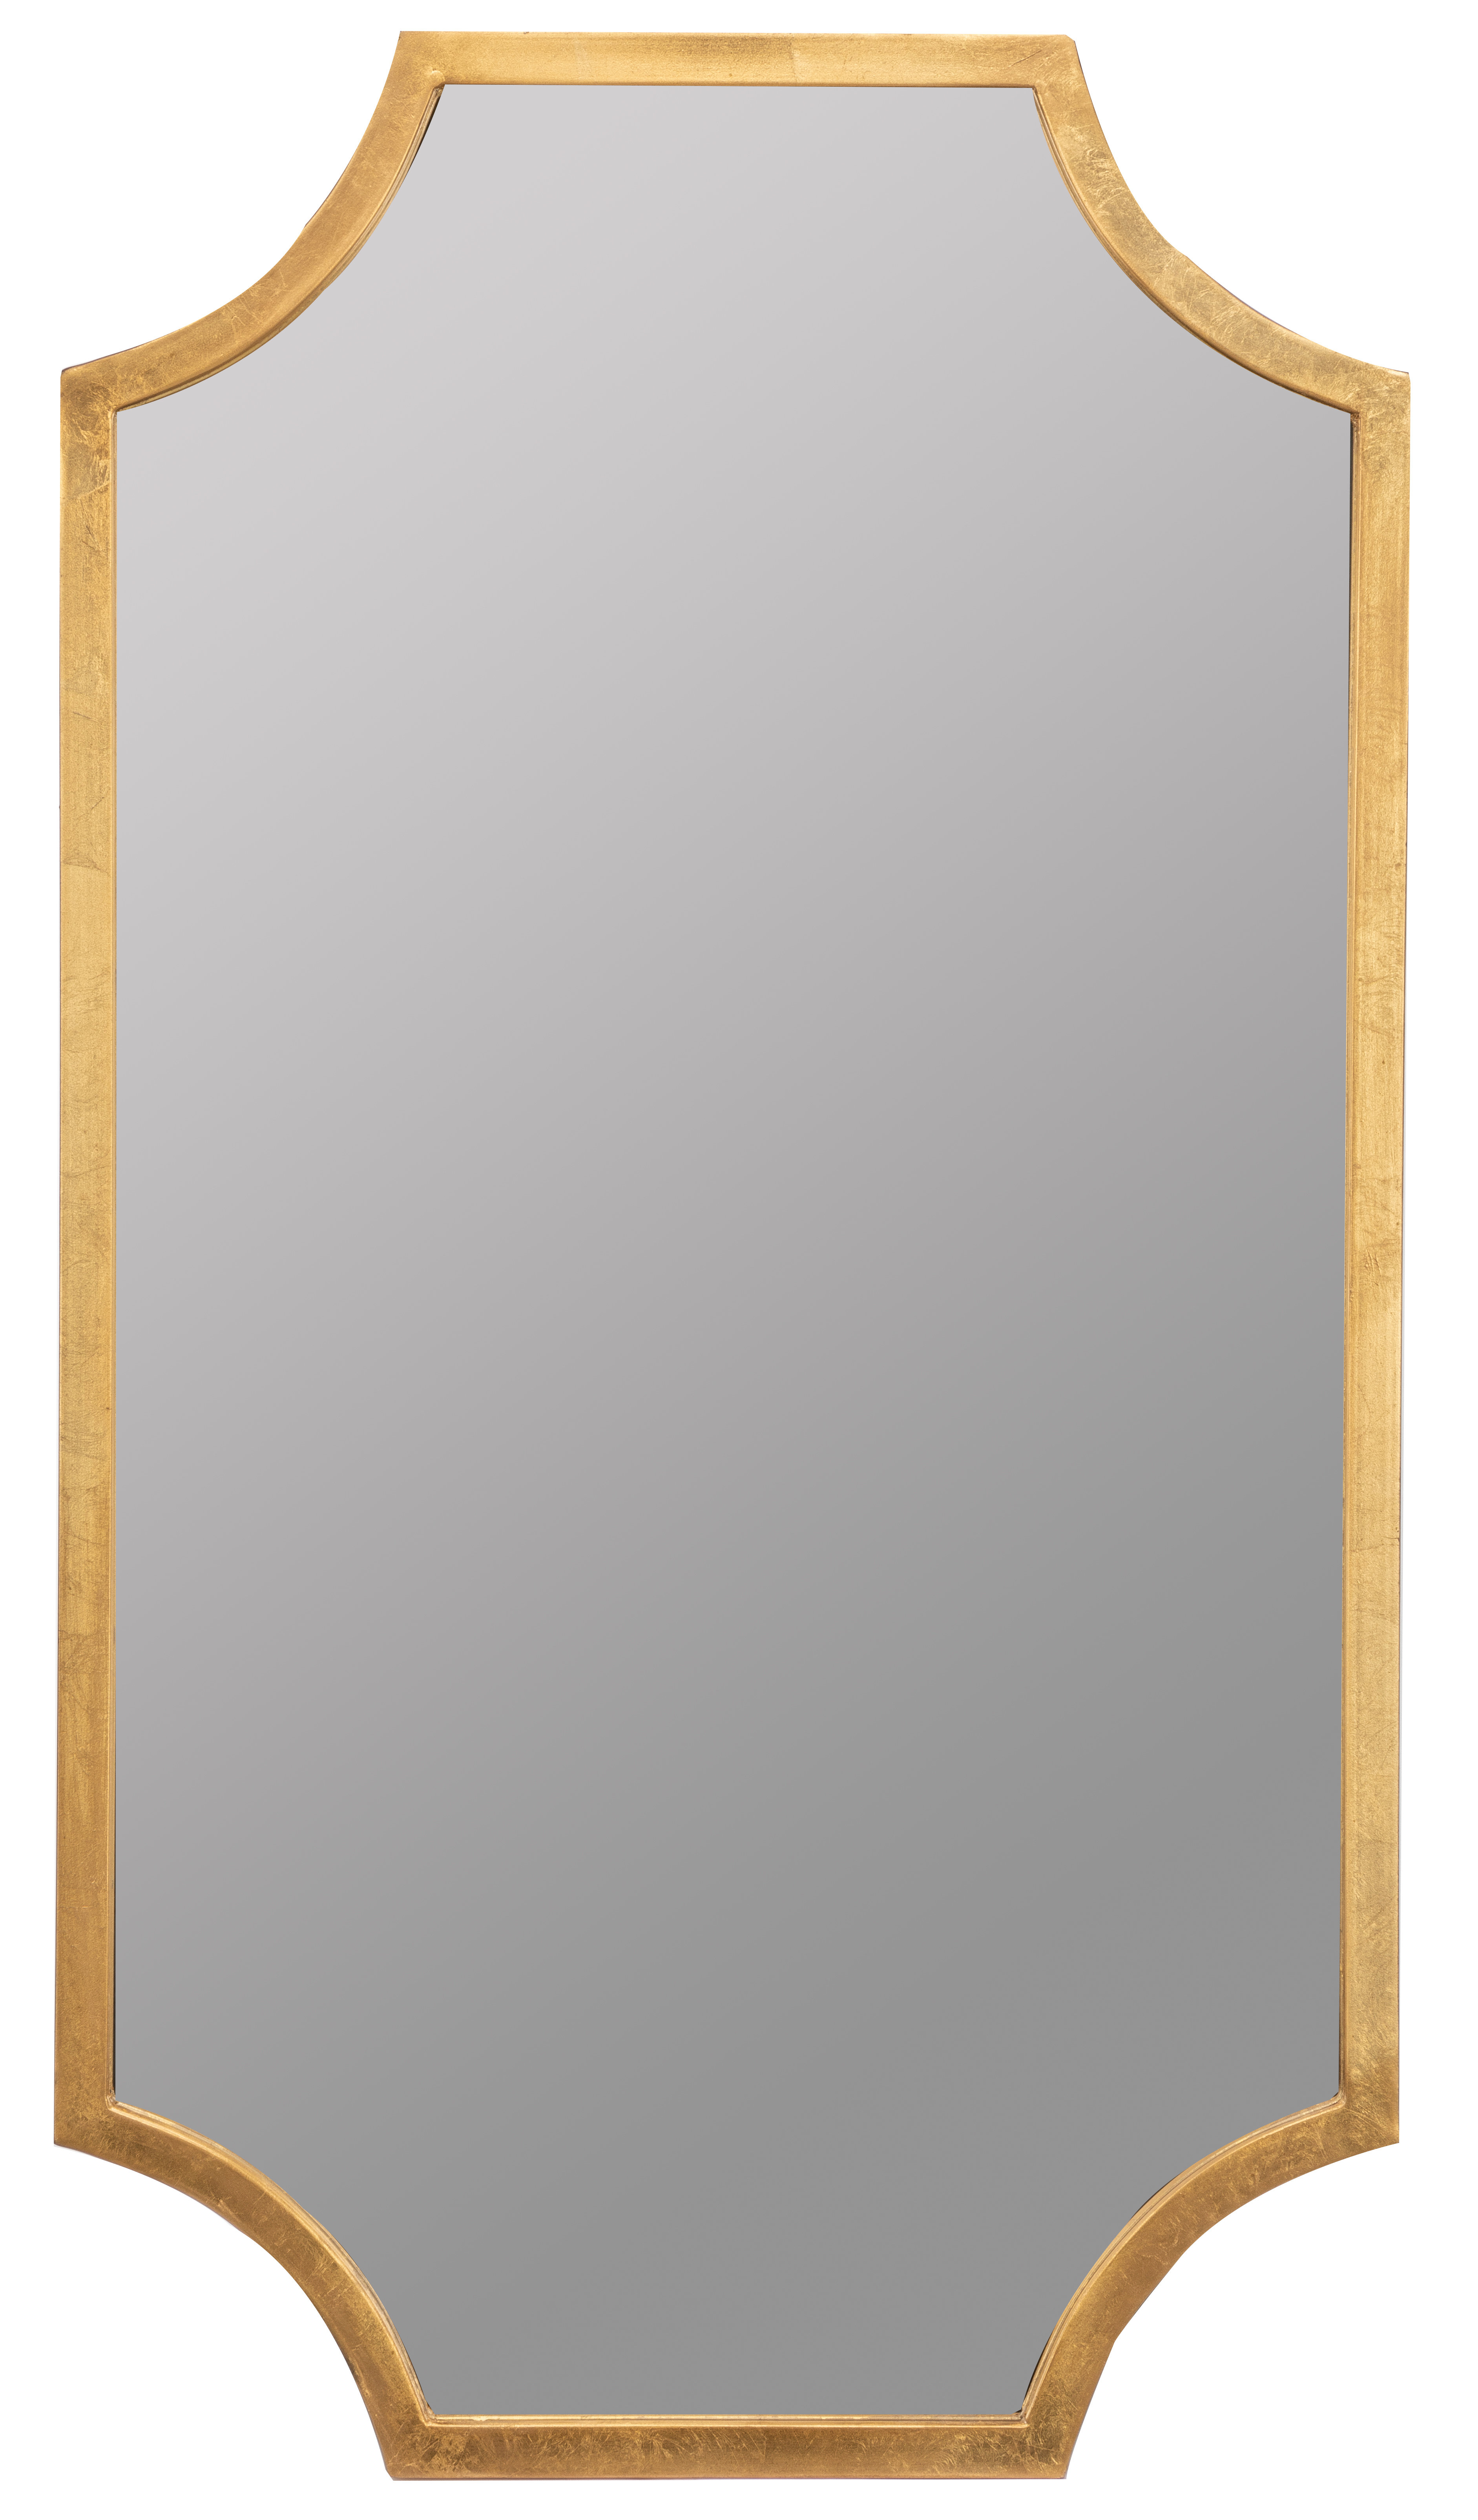 Brought Accent Mirror For Guidinha Modern & Contemporary Accent Mirrors (Image 3 of 20)